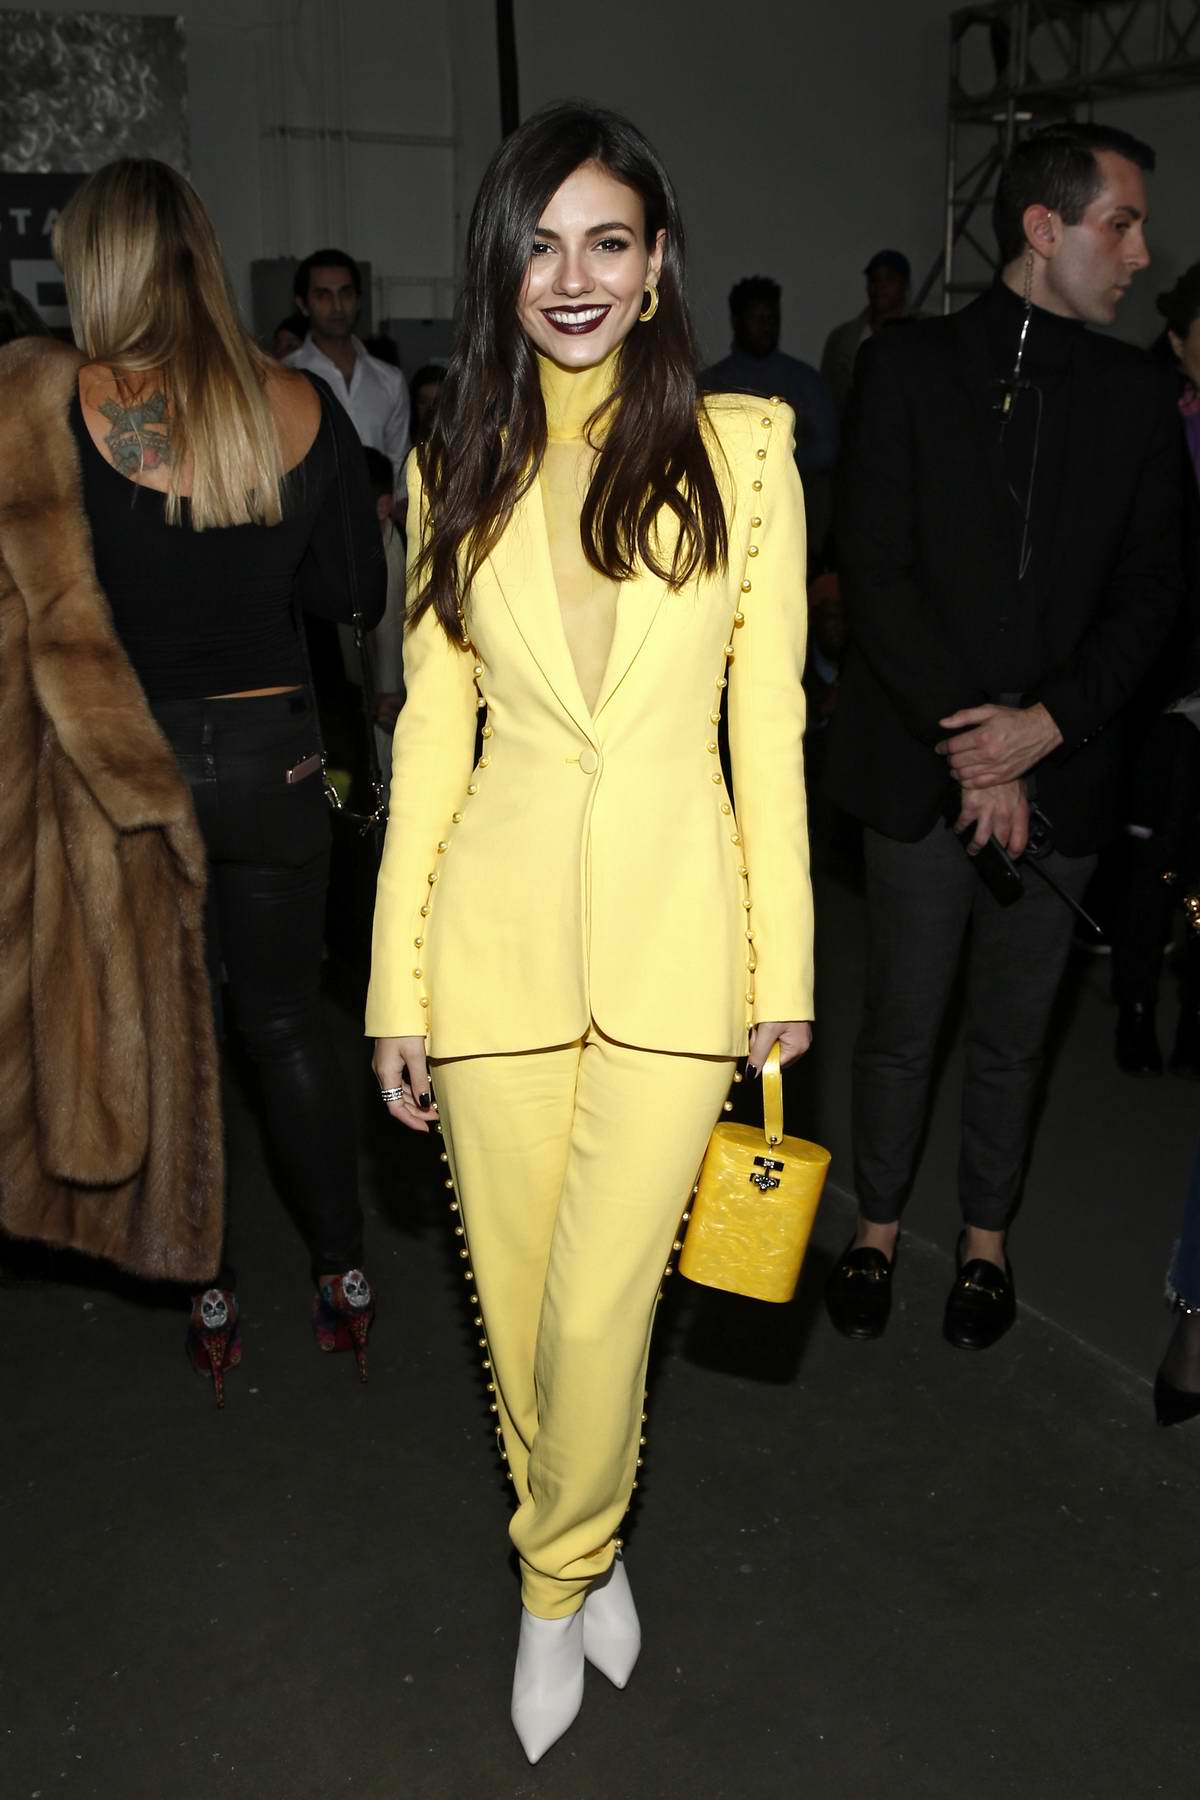 Victoria Justice attends the Pamella Roland fashion show during New York Fashion Week at Pier 59 in New York City